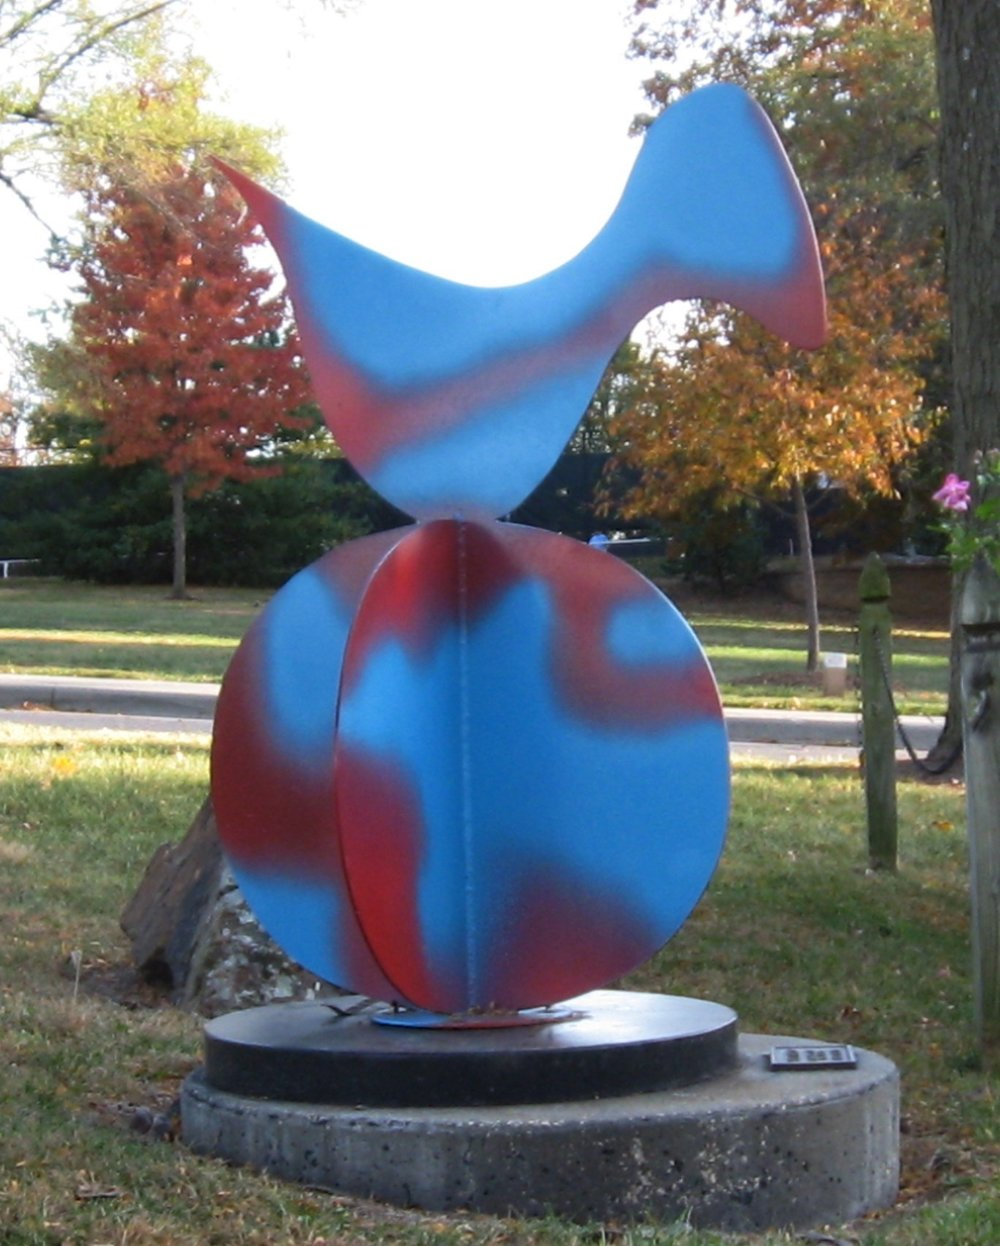 Sky Bird  1996, painted steel, 3x3x3 ft  Taliaferro Sculpture Garden Prairie Village, KS